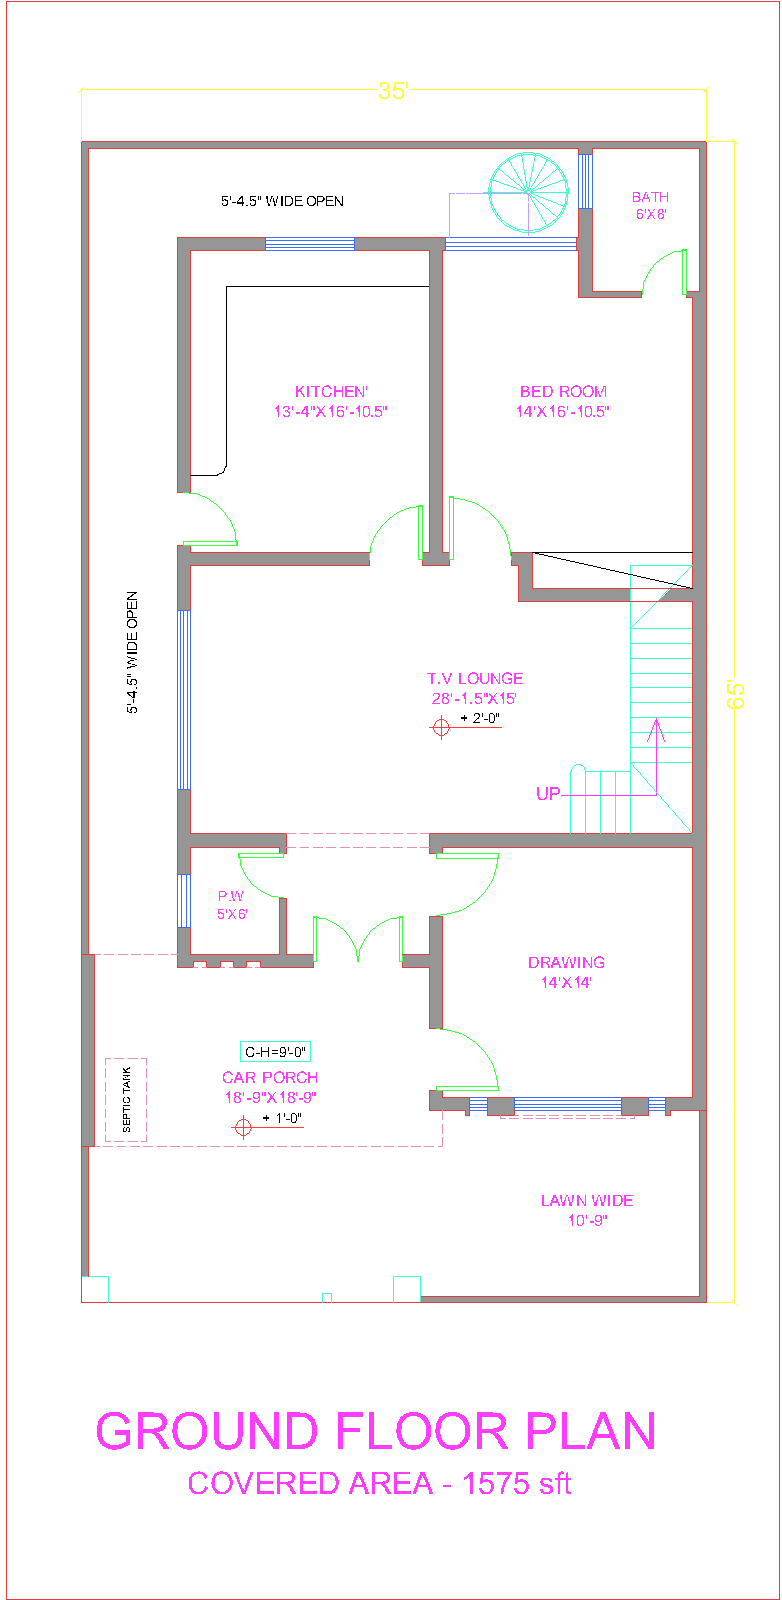 3D Front Elevation.com: 10 marla house plan layout